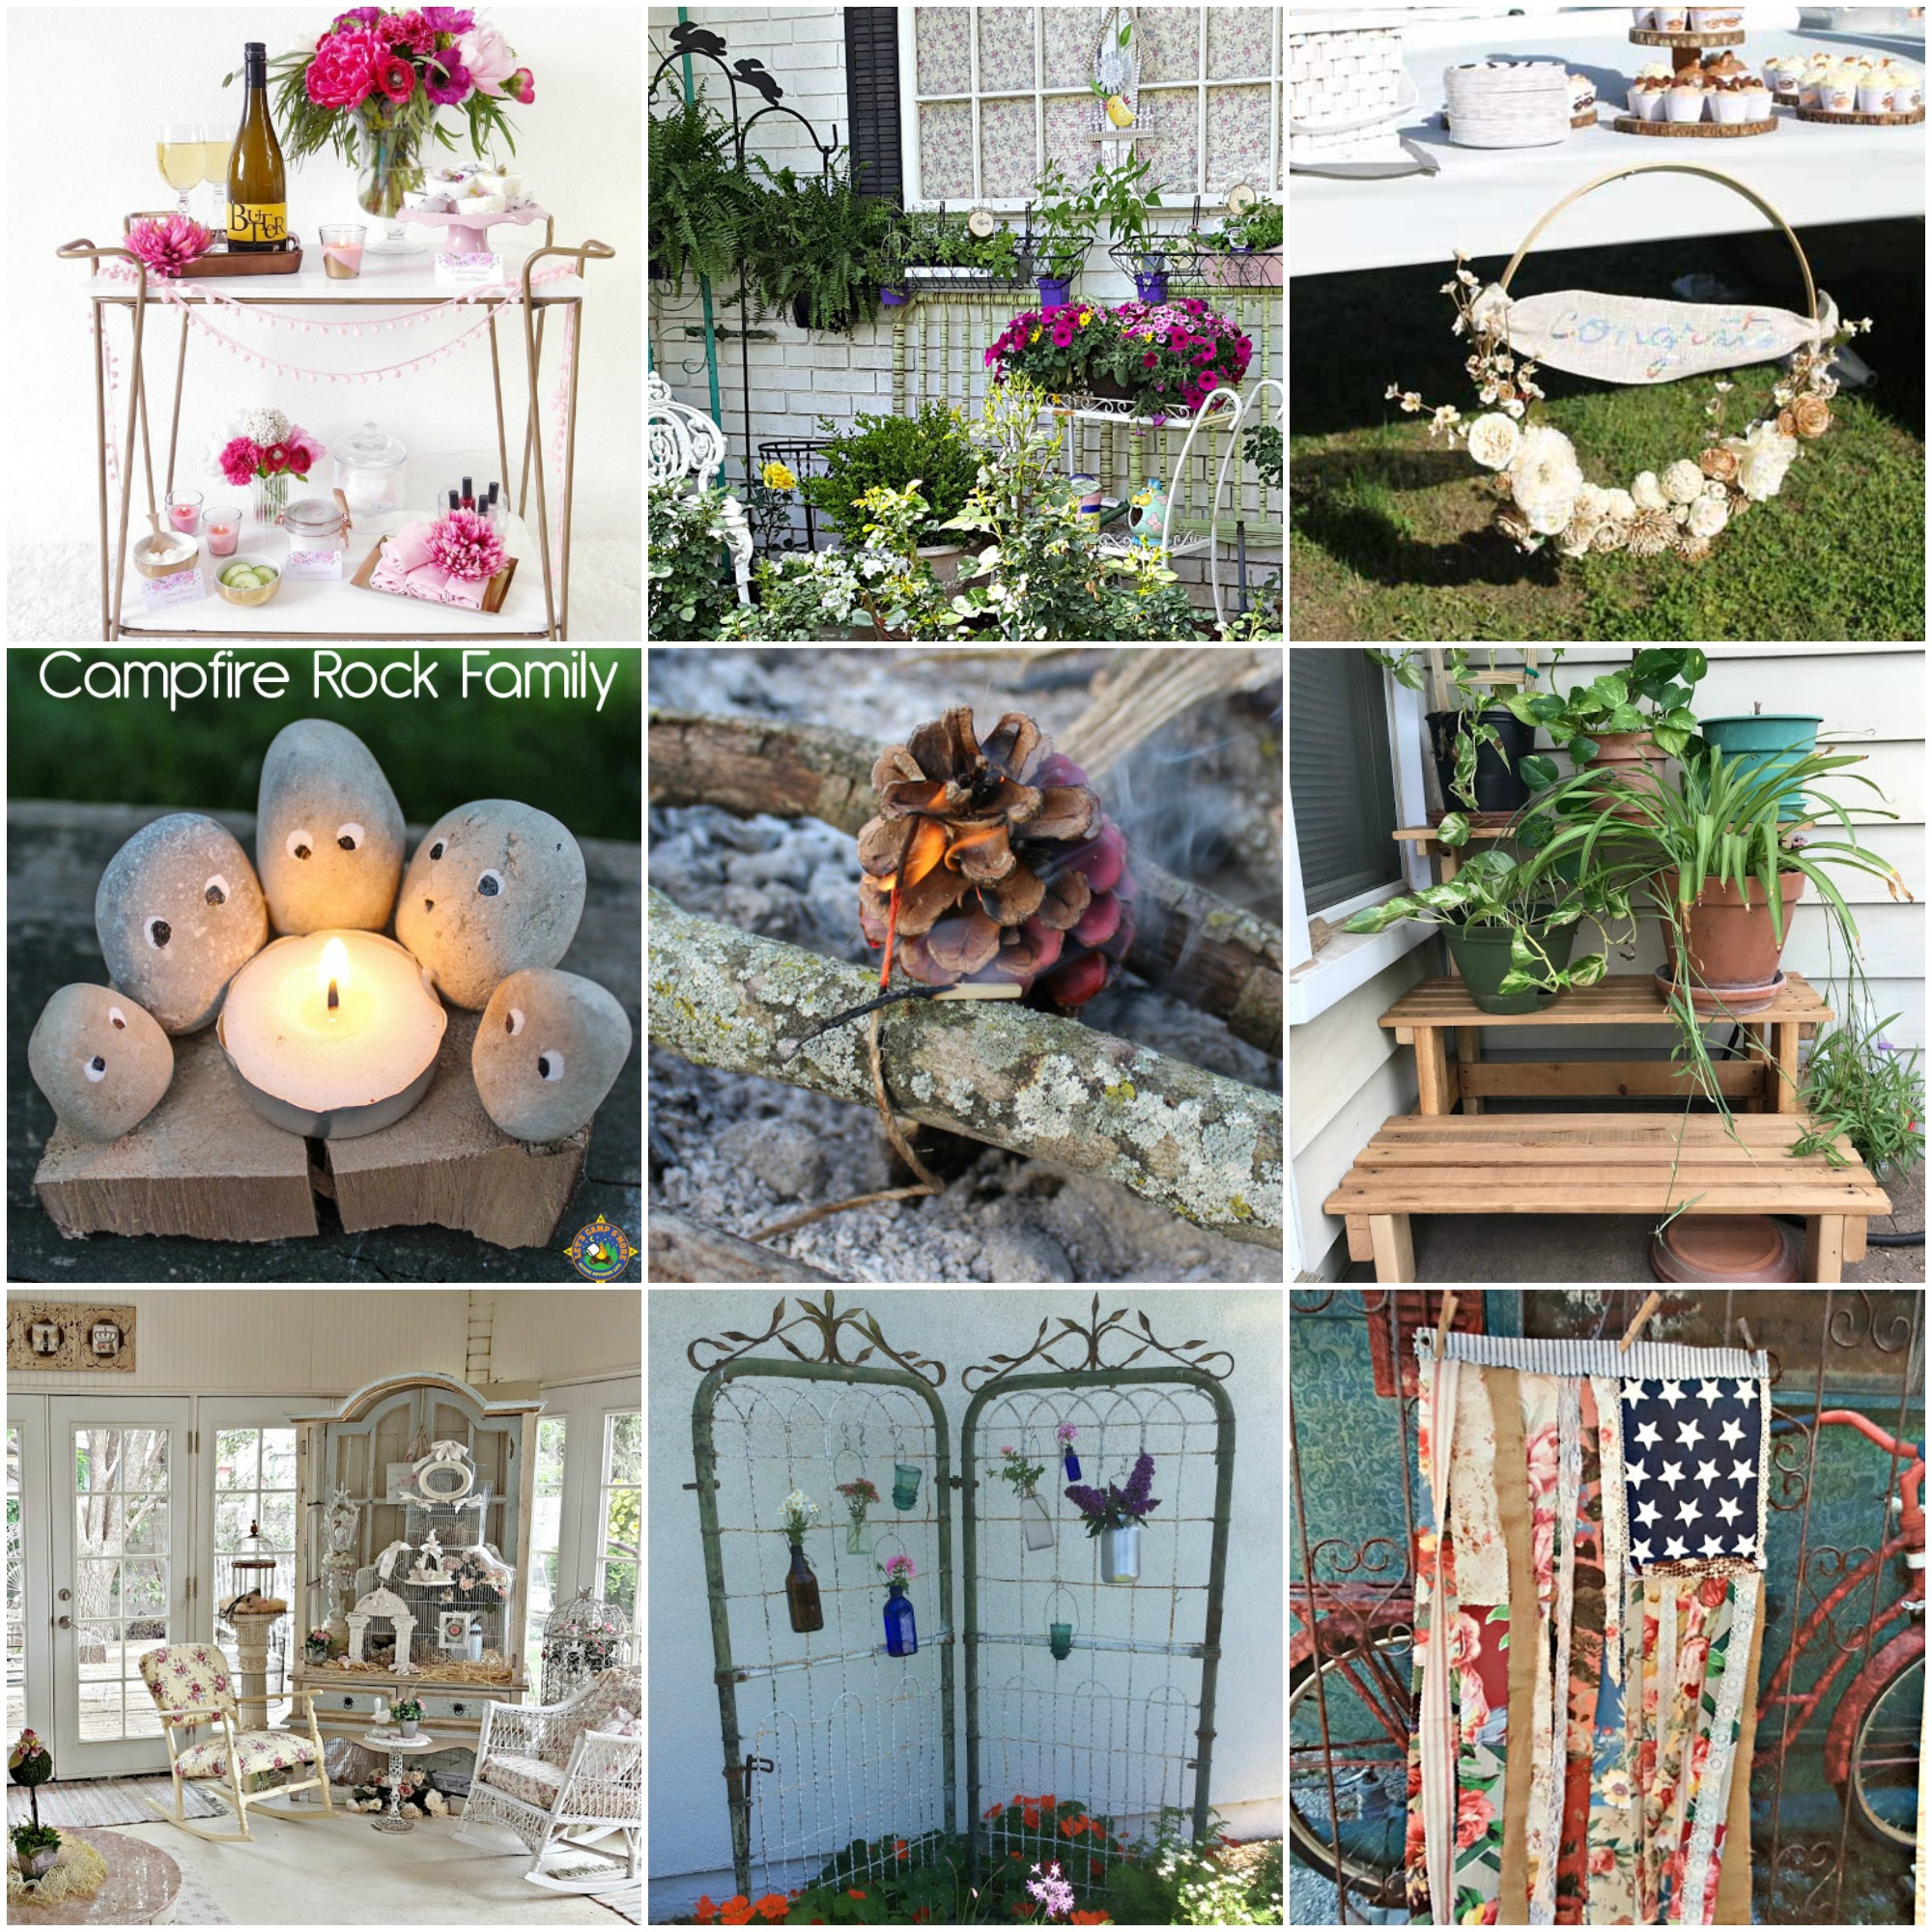 Summer Decor and Outdoor Fun Ideas